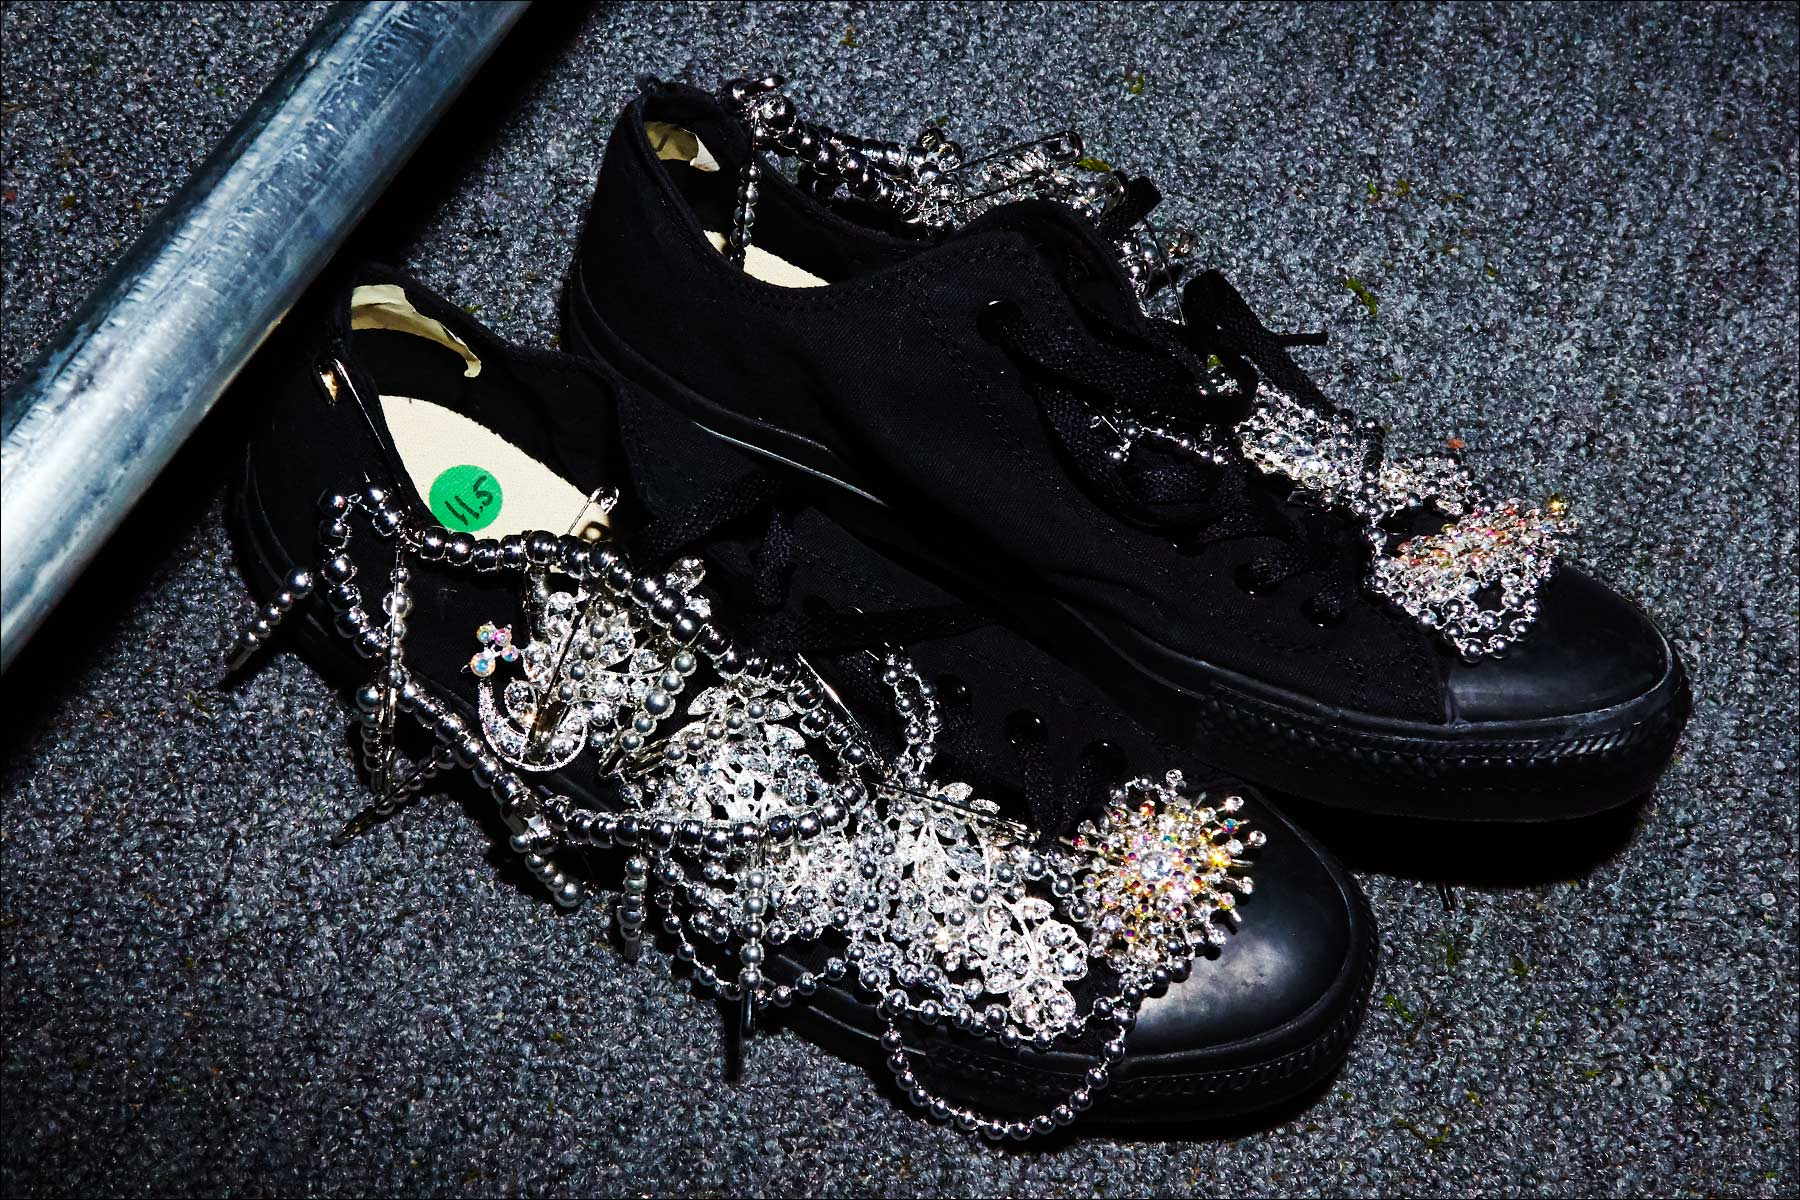 Embellished Converse sneakers photographed backstage at Libertine F/W17 collection. Photography by Alexander Thompson for Ponyboy magazine NY.